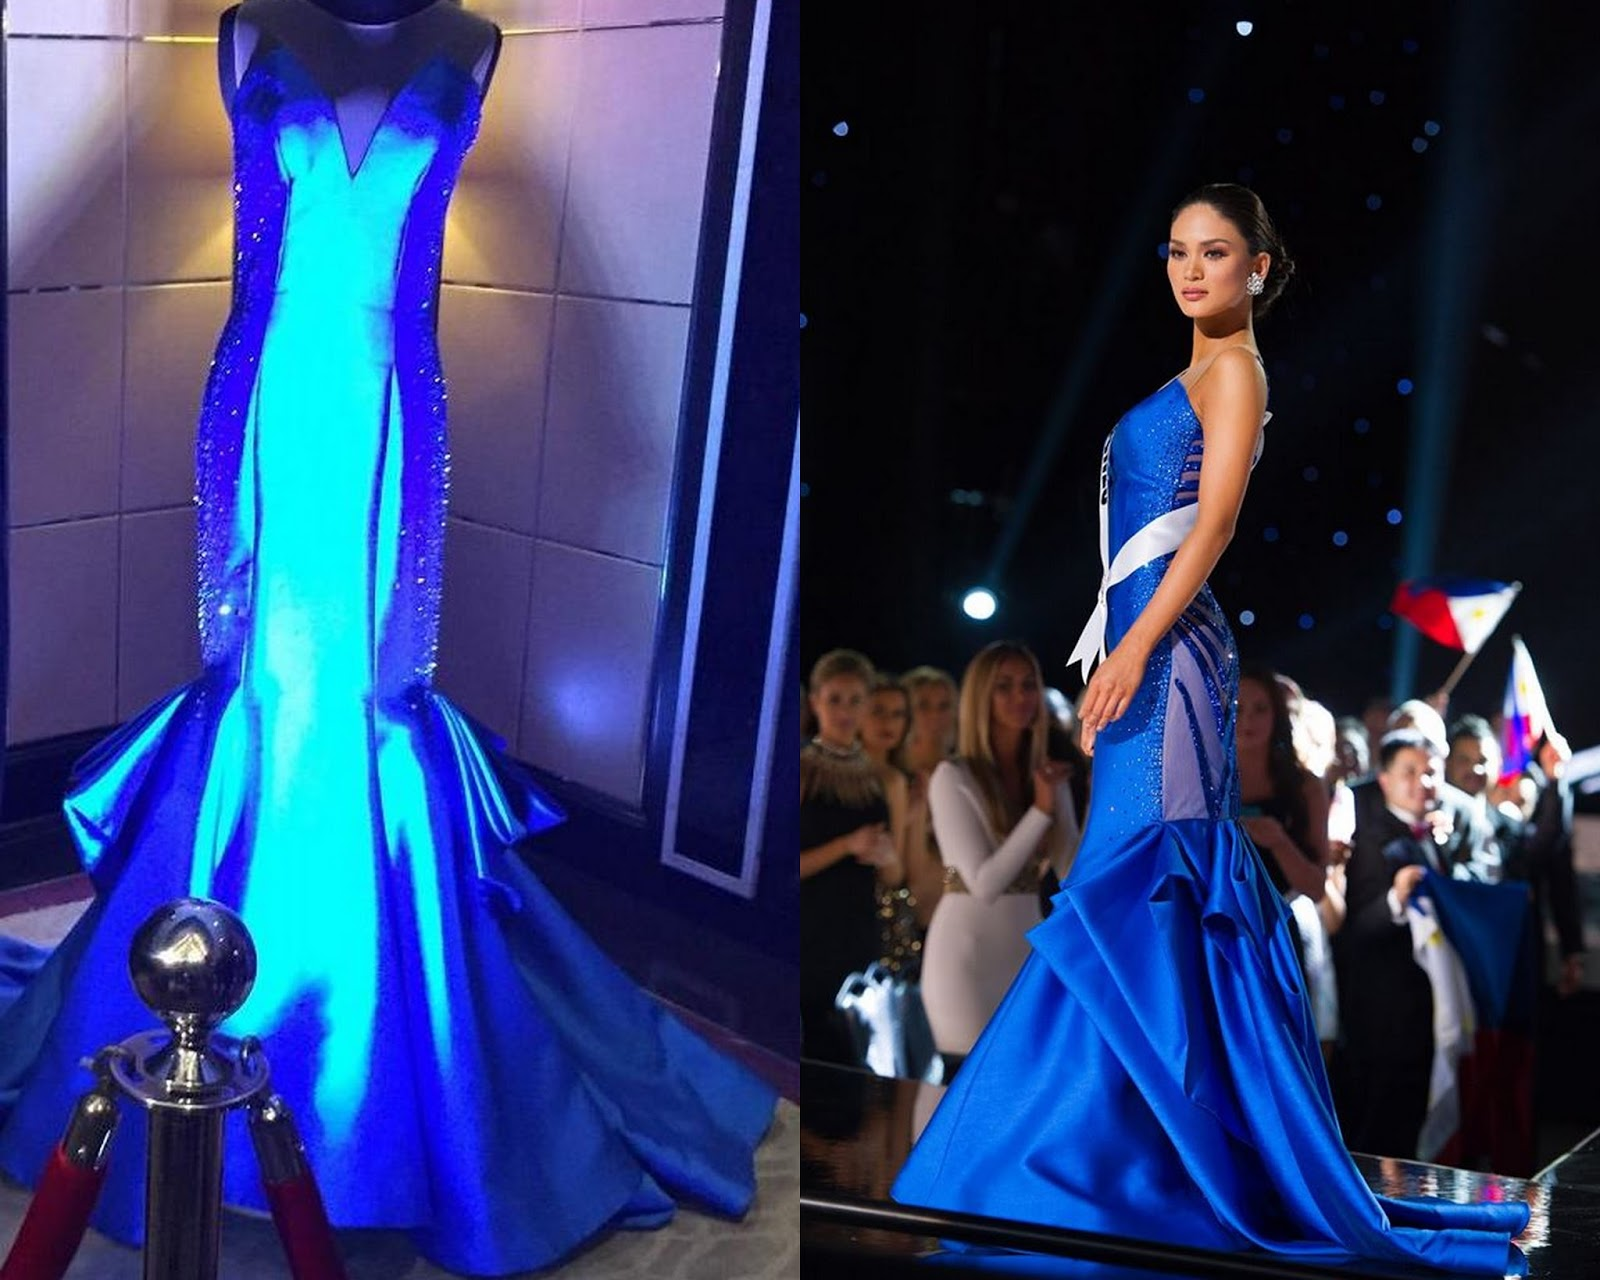 The royal blue gown designs are hot fashion trends inspired by Miss ...